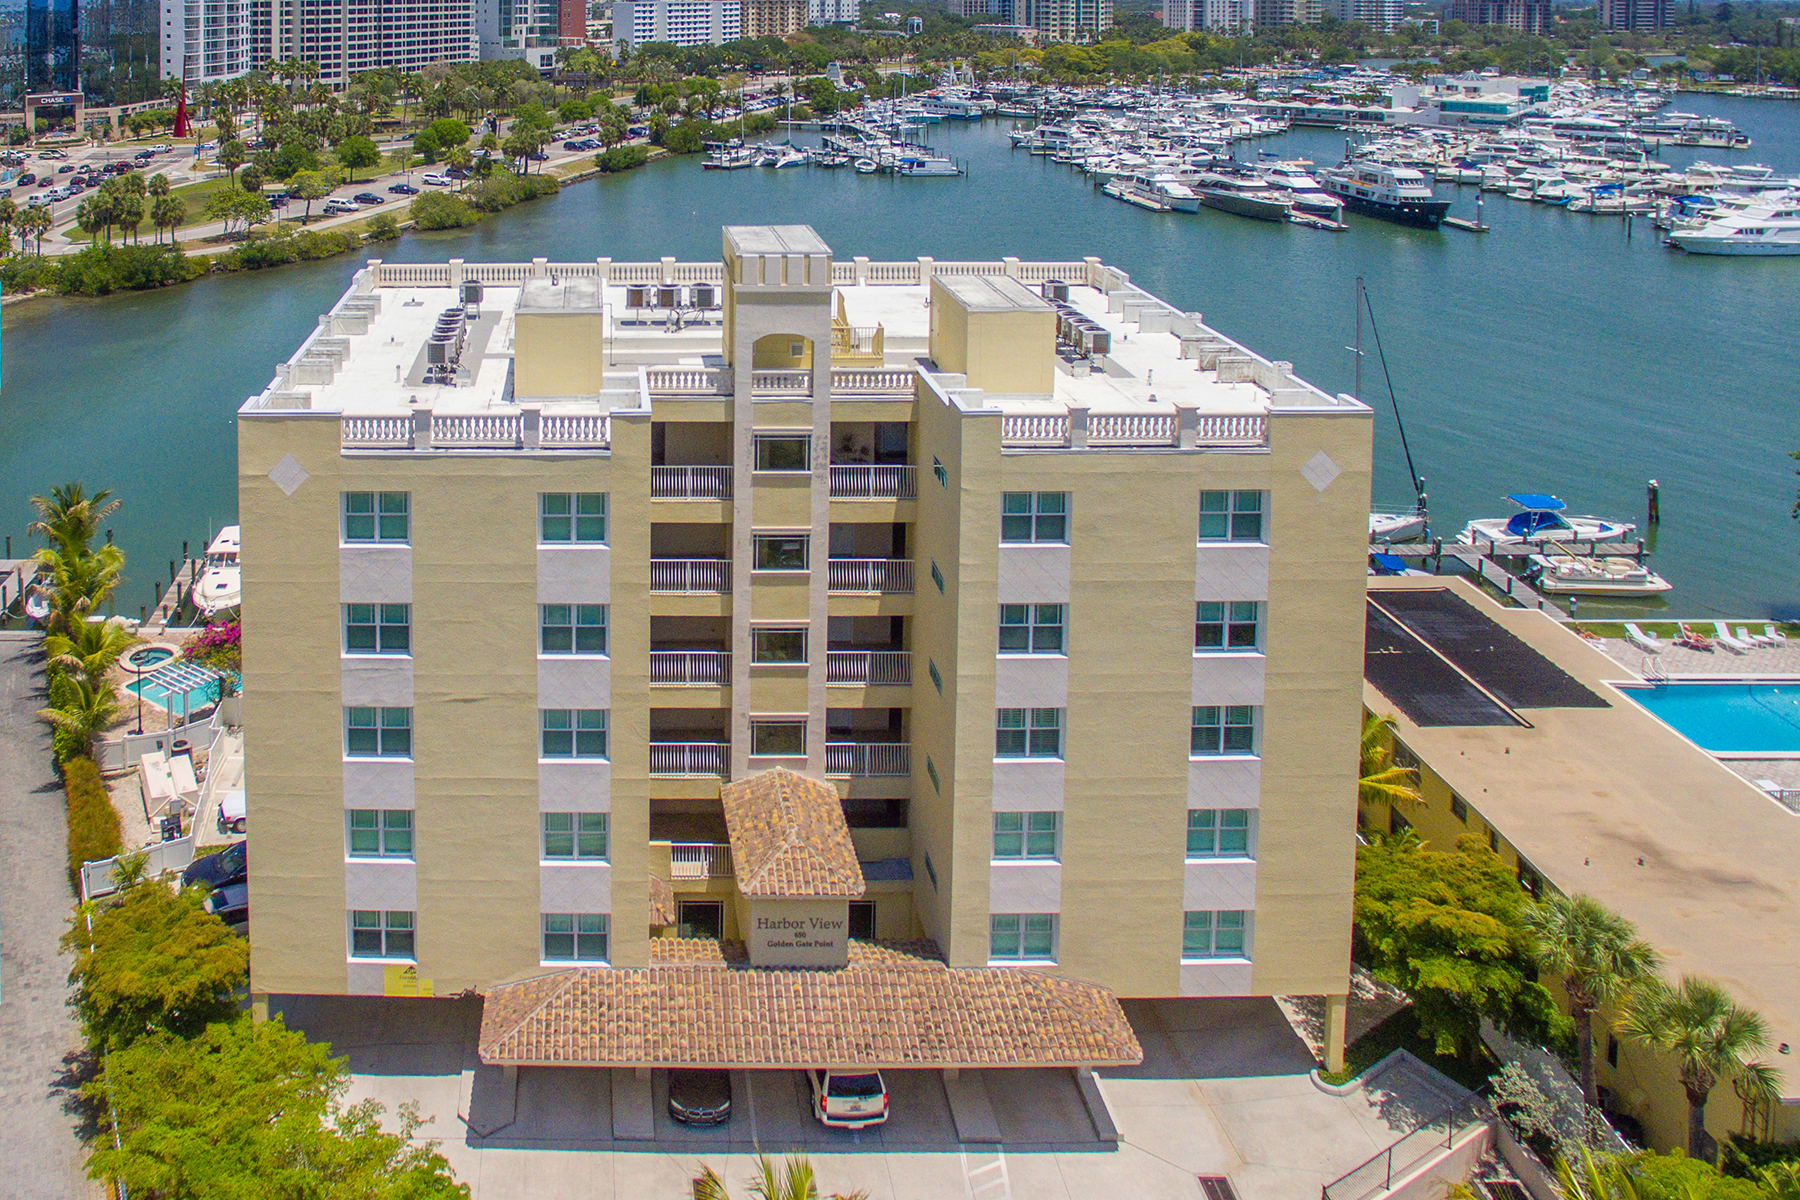 Condominium for Sale at GOLDEN GATE POINT 650 Golden Gate Pt 301 Sarasota, Florida, 34236 United States